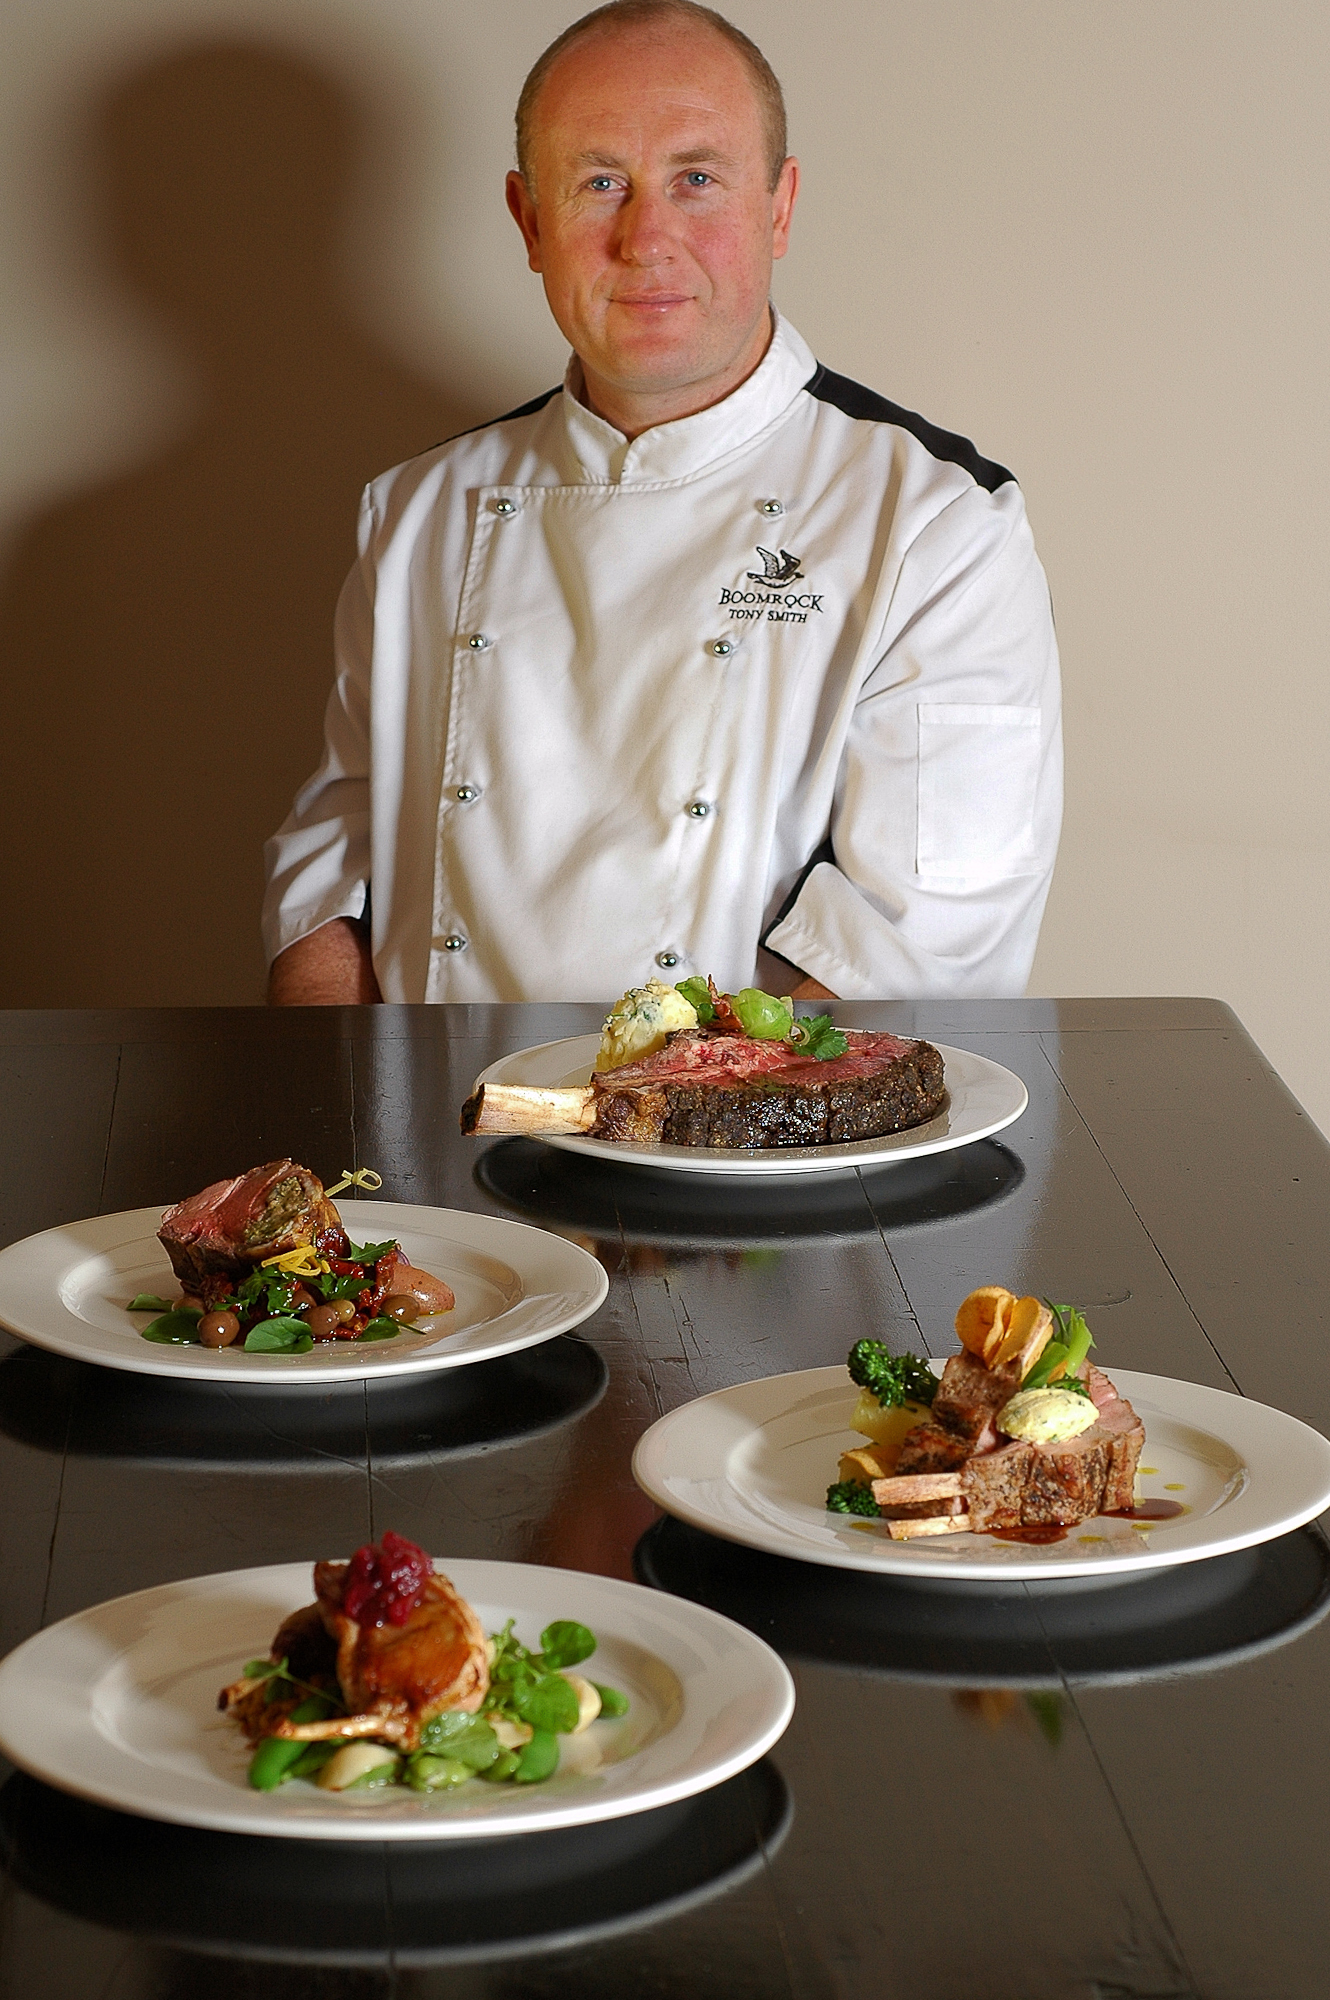 Boomrock Lodge - Chef Tony Smith